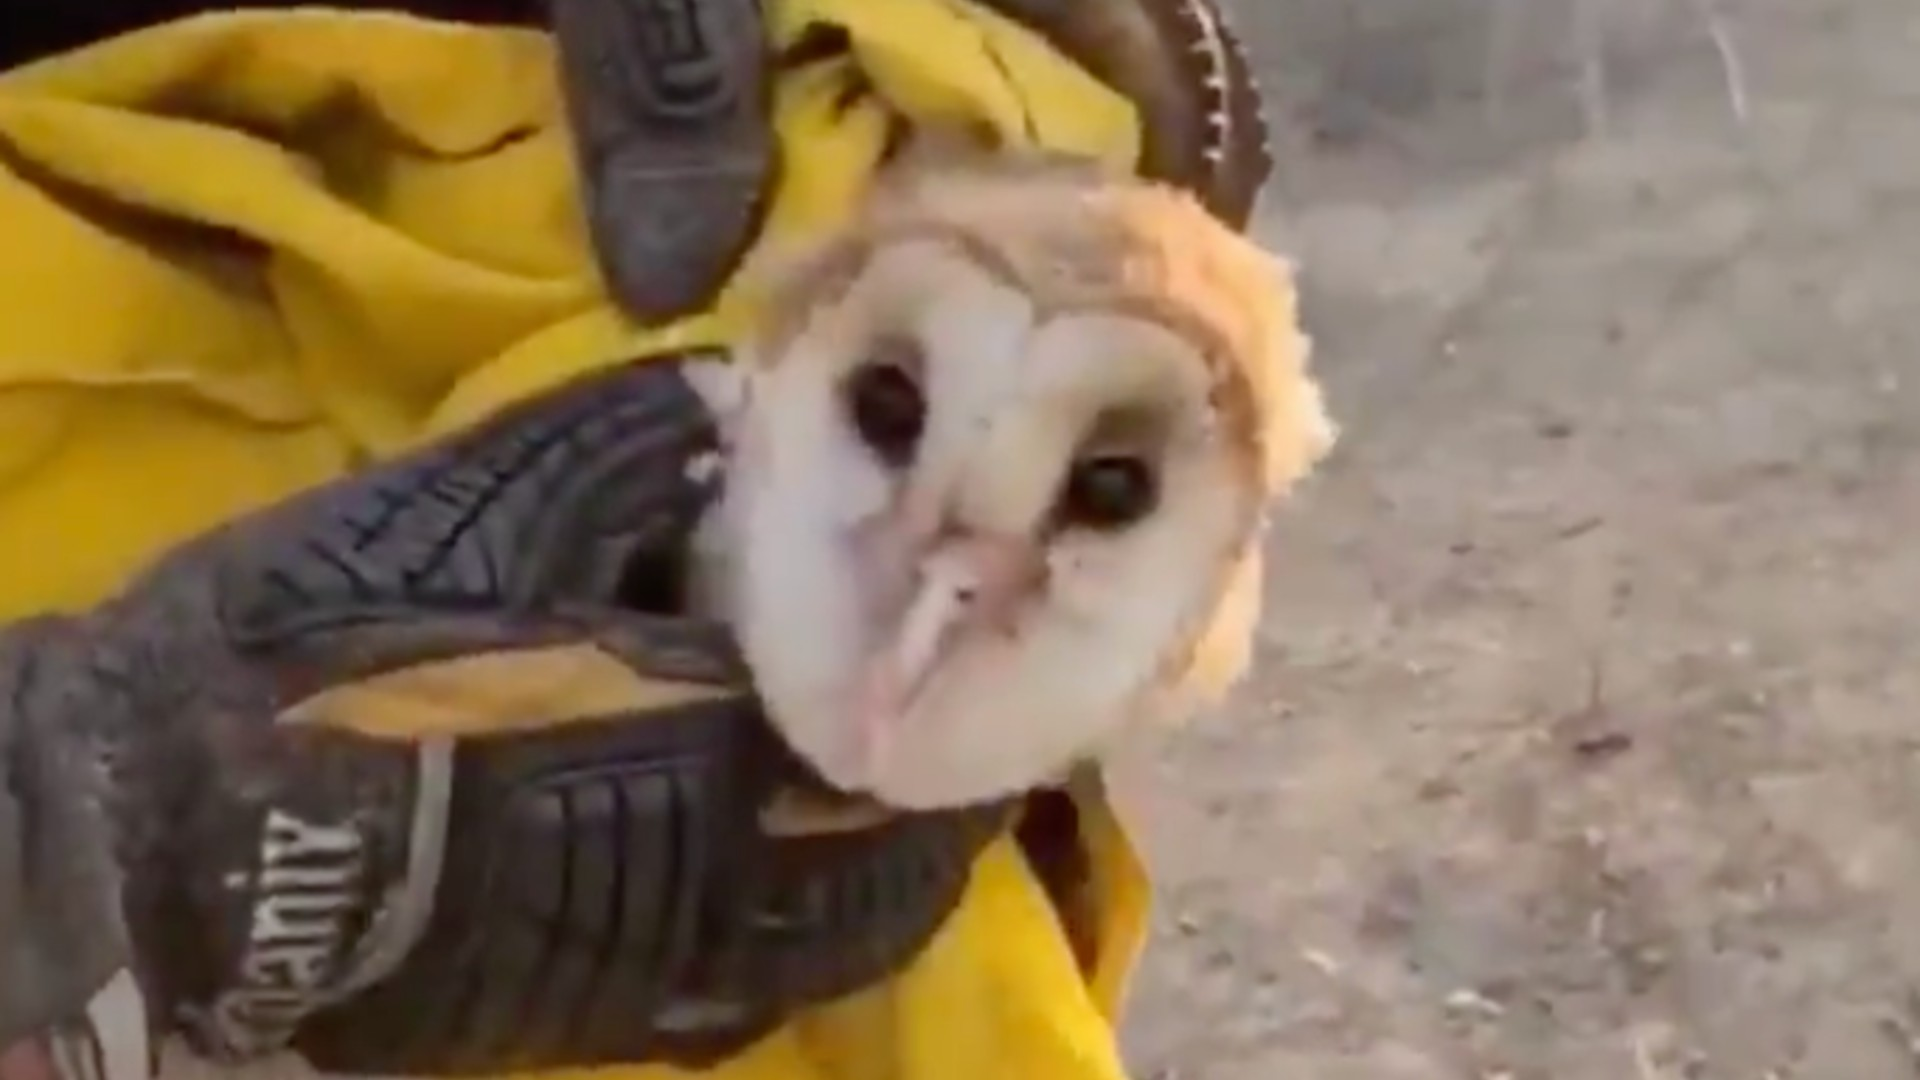 A barn owl was rescued by firefighters from the Silverado Fire on Oct. 27, 2020. (Orange County Fire Authority)